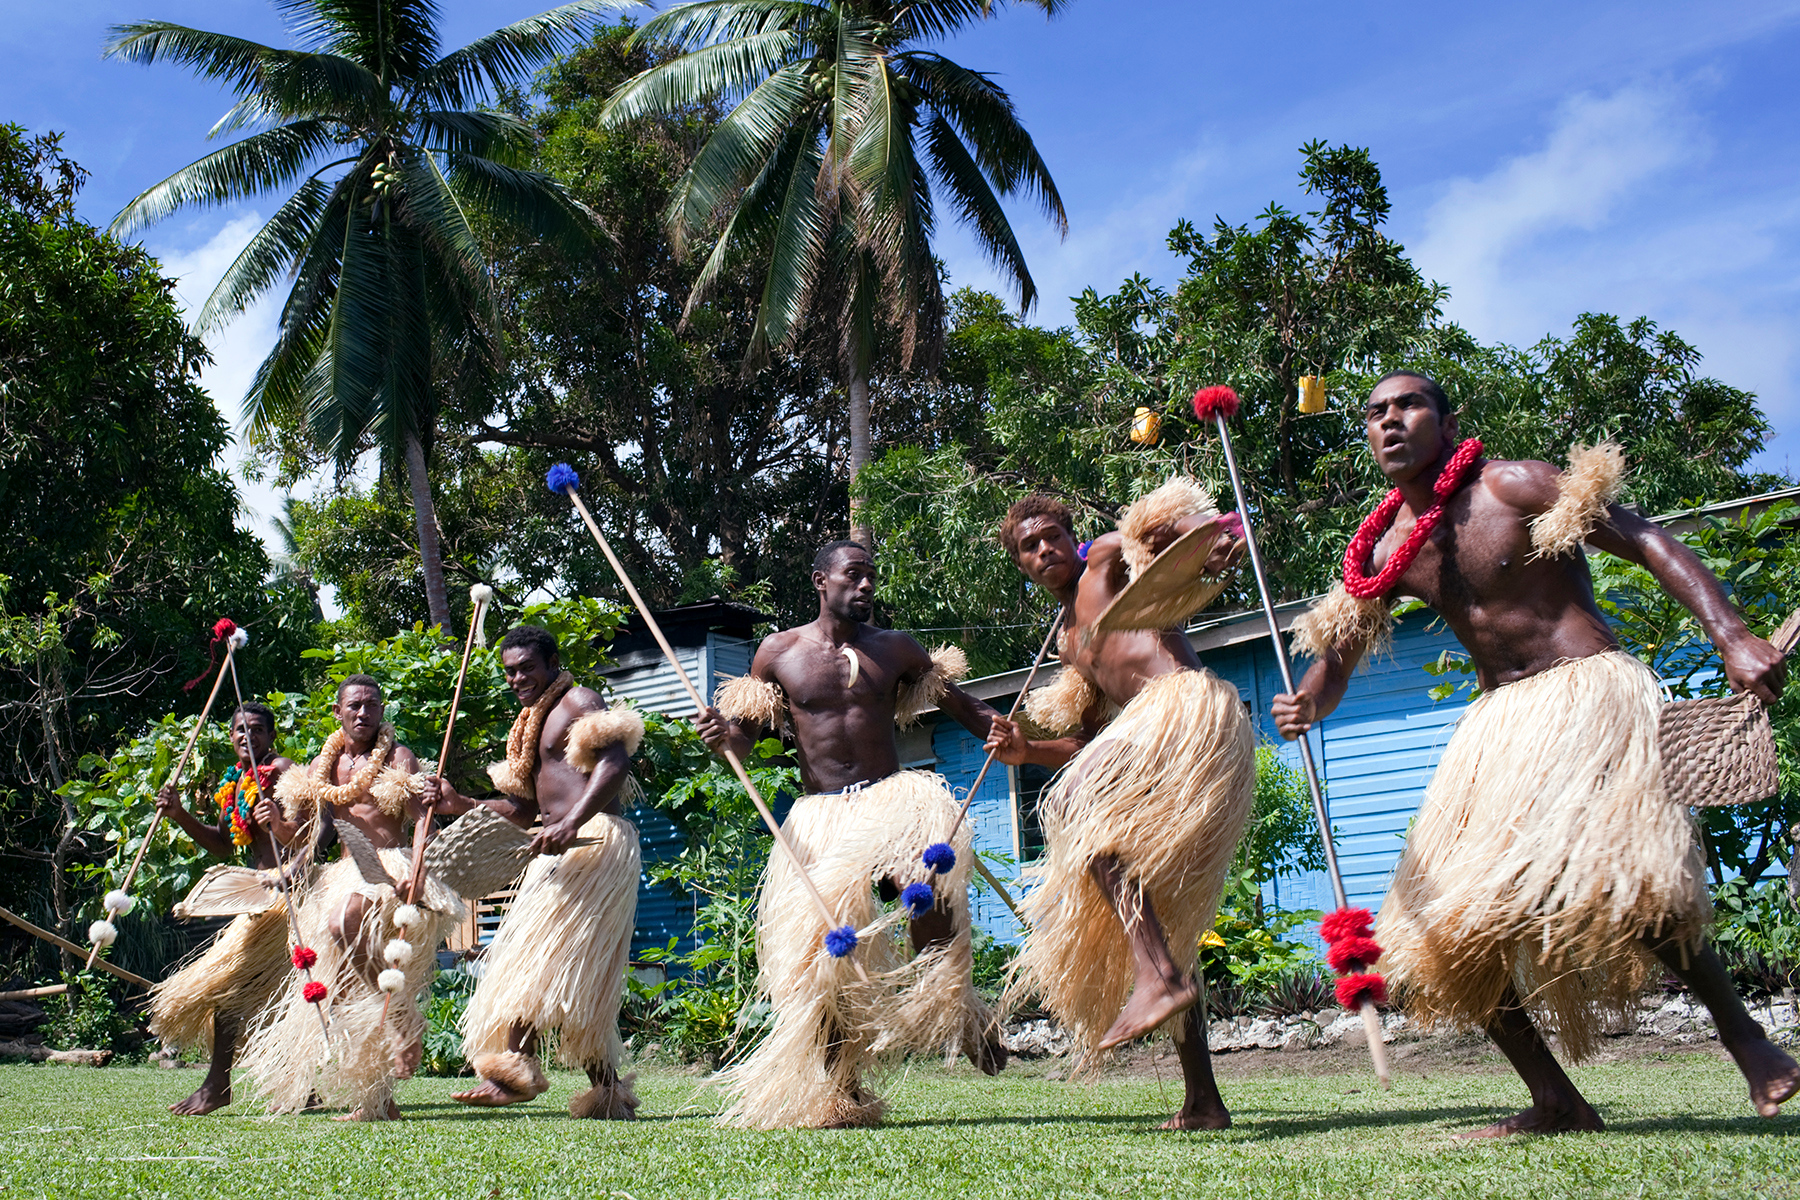 Explore local traditions to build unforgettable moments